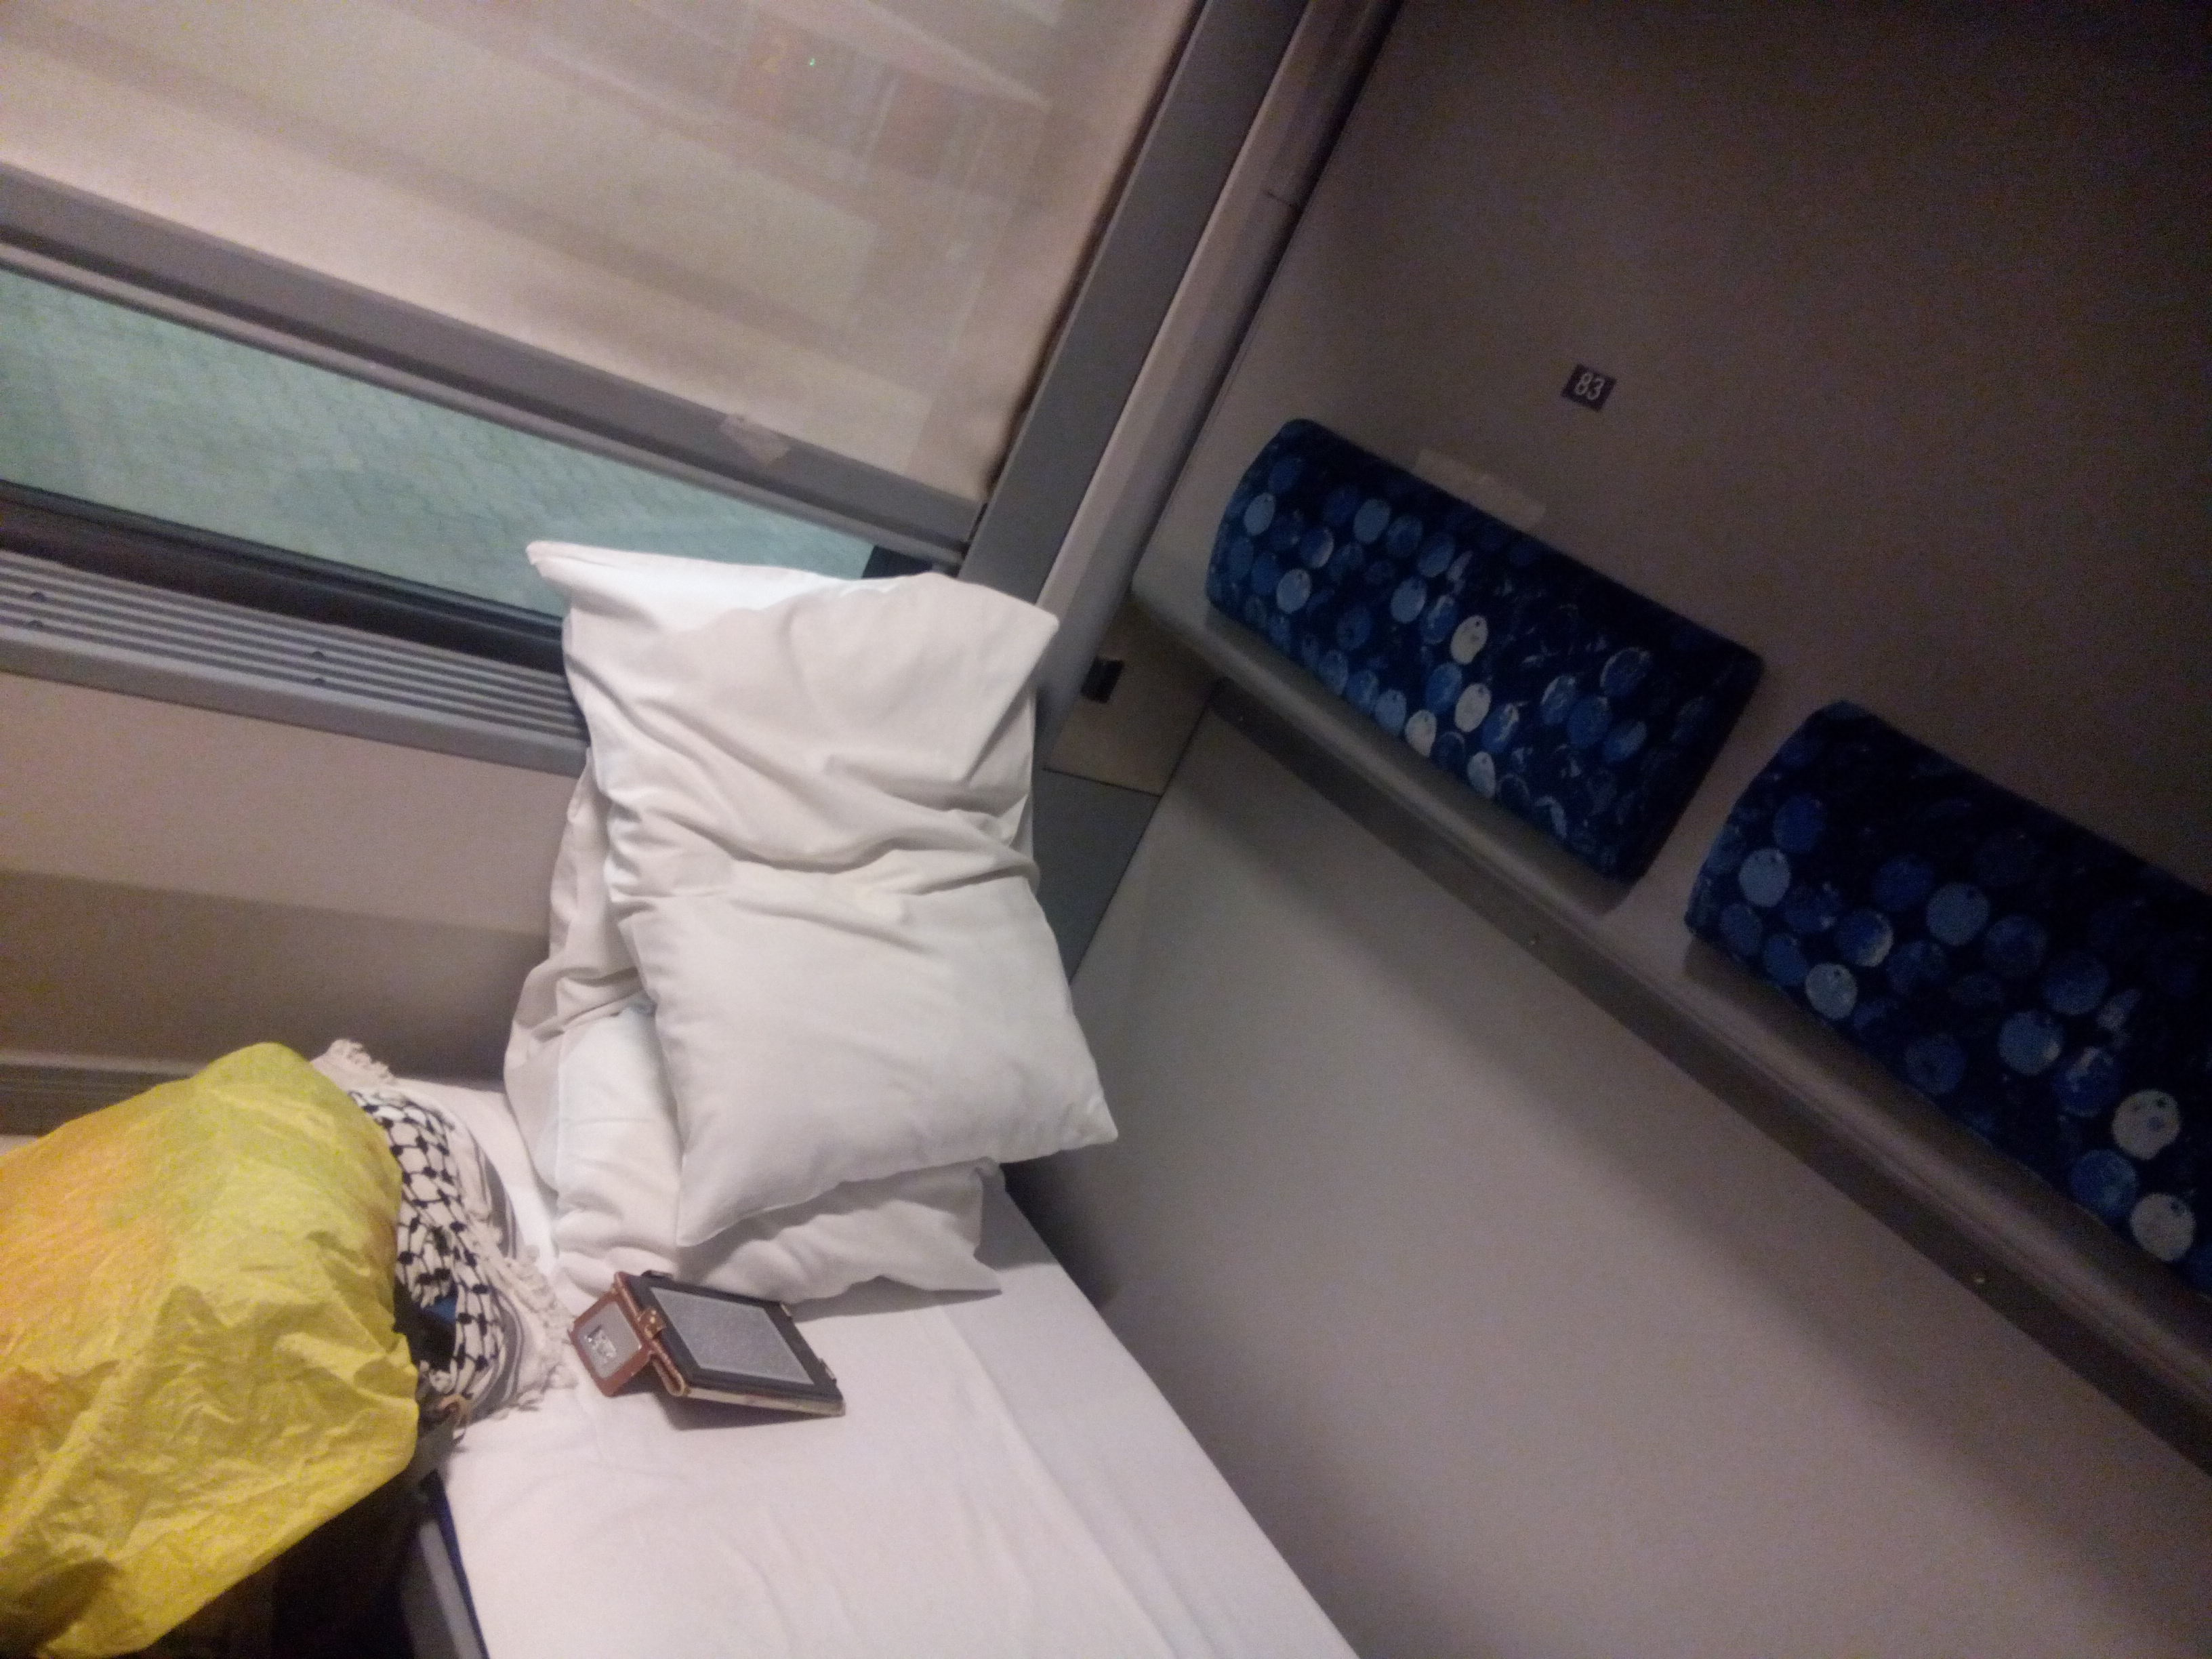 Two pillows on a small bed in a train cabin, with a kindle